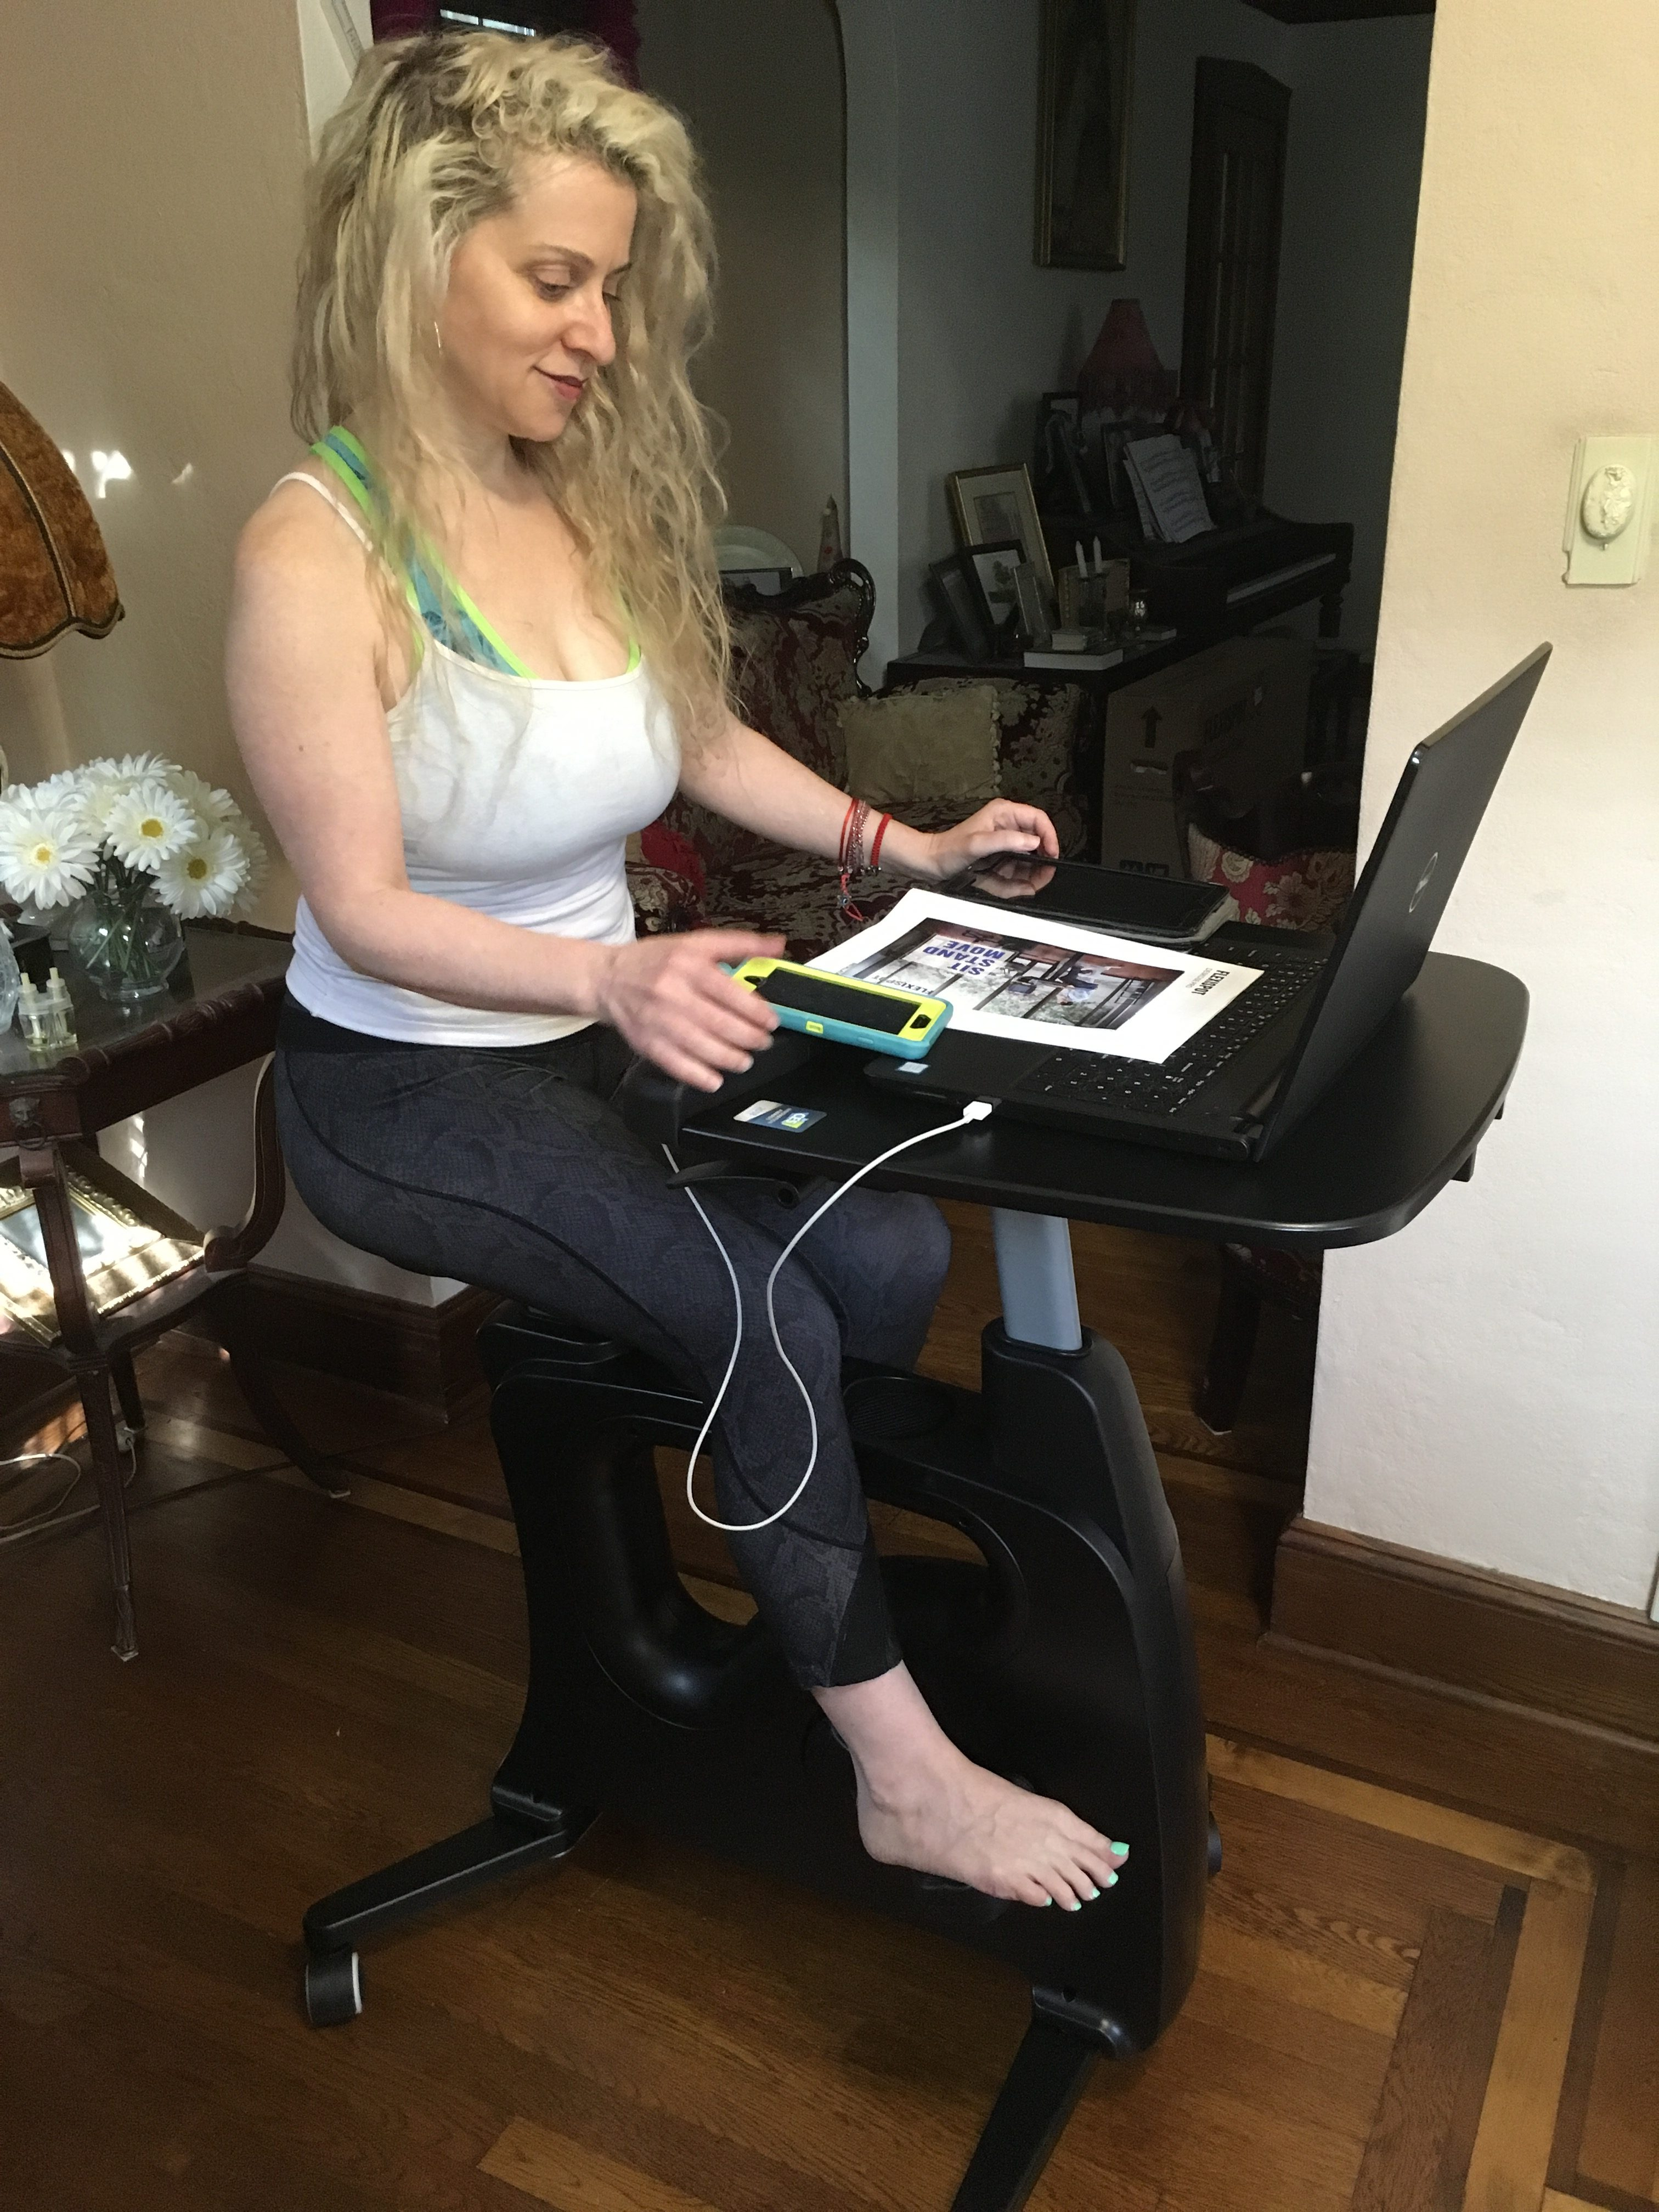 5 Ways FlexiSpot's Ergonomic Products Can Change Your Sedentary Lifestyle